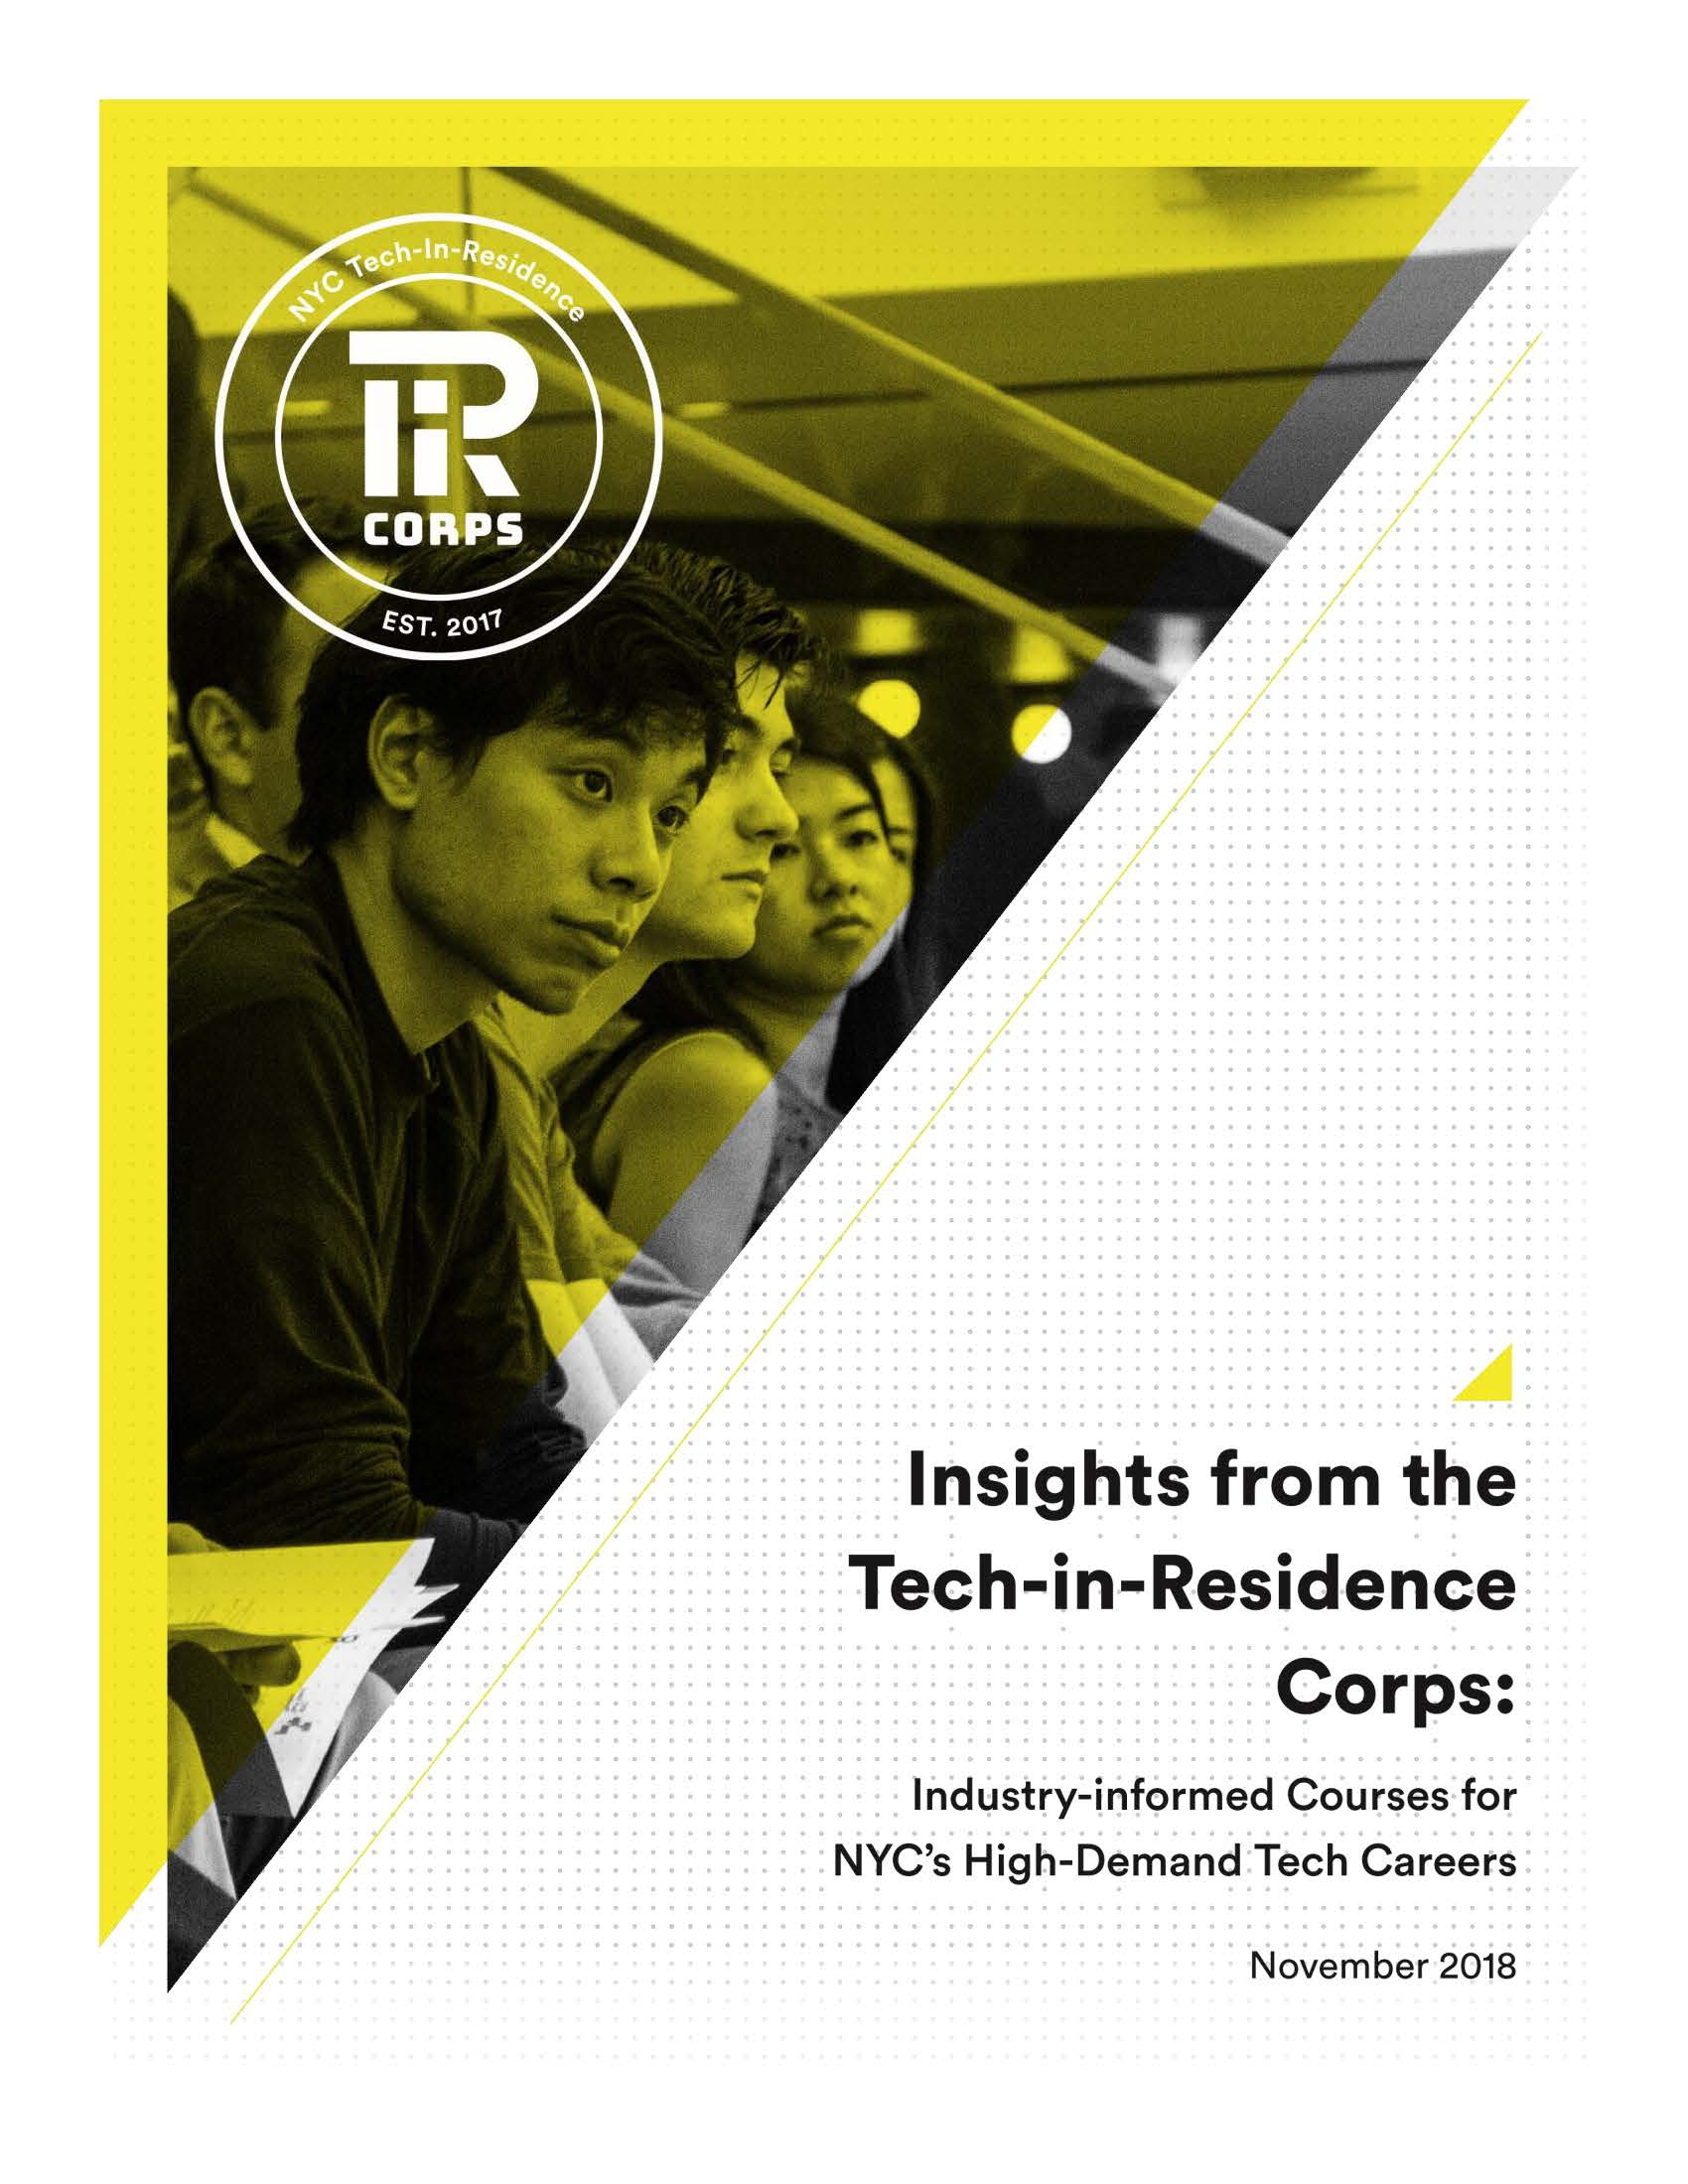 Industry Informed Courses - Learn how industry is working to inform higher education through the Tech-in-Residence Corps.